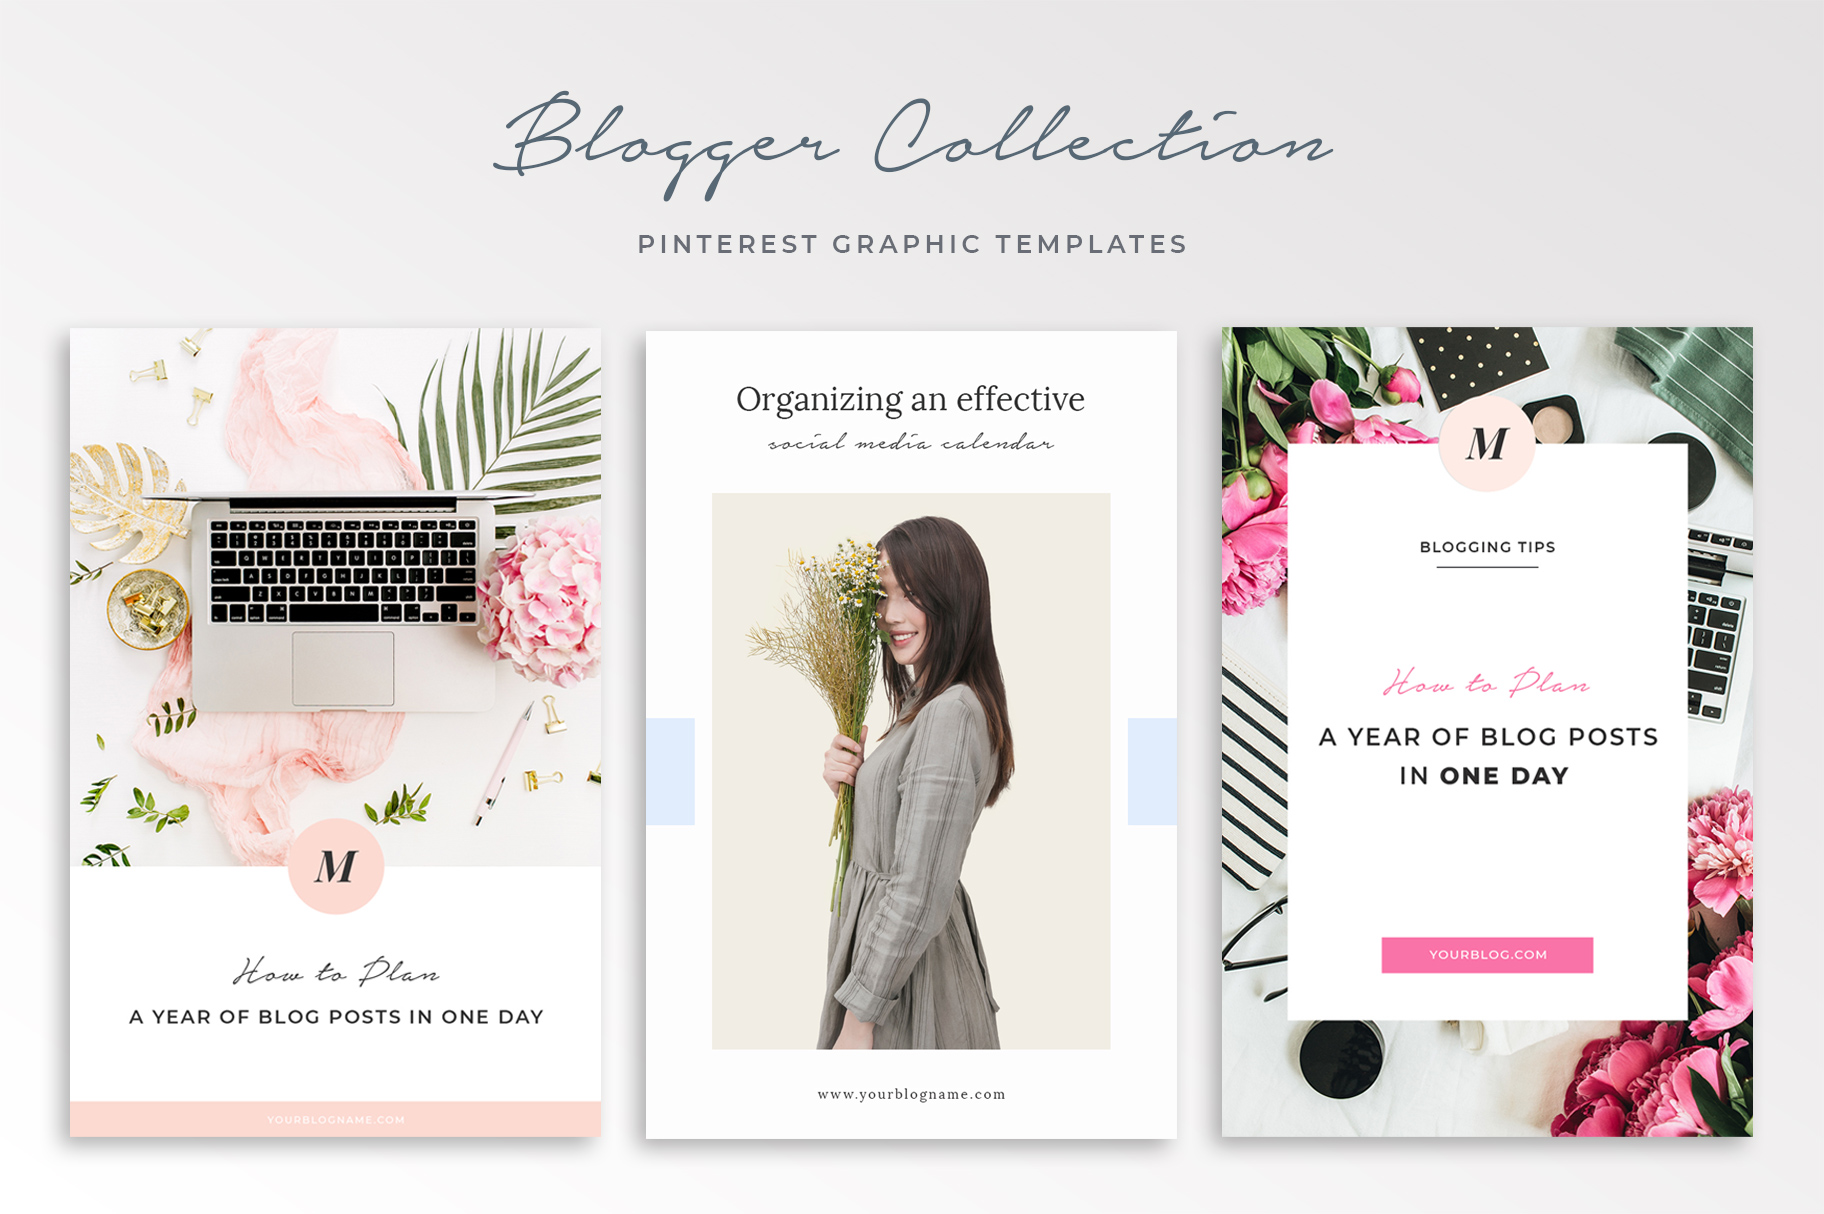 Pinterest Graphic Templates for Bloggers